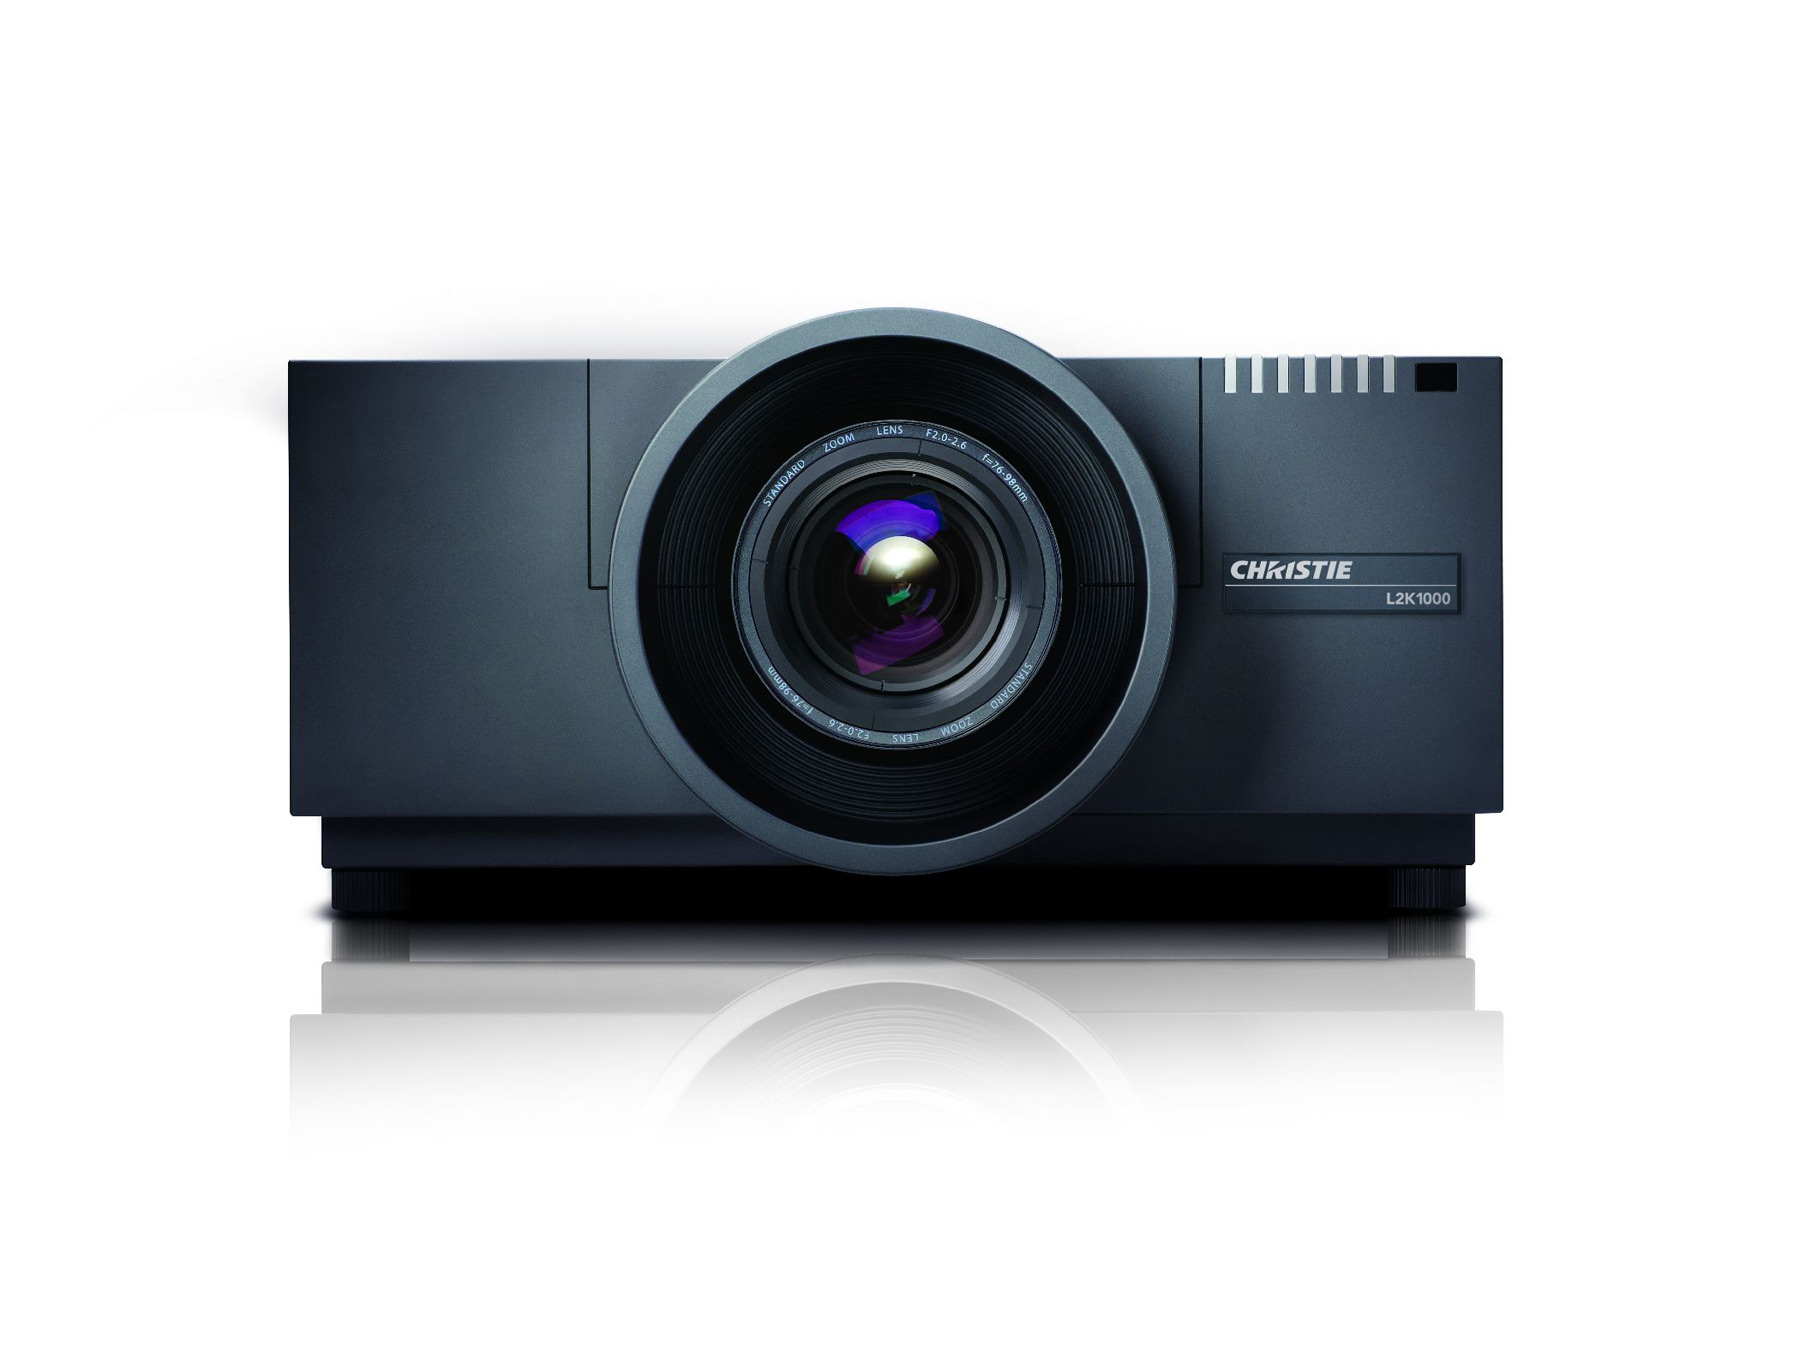 /globalassets/.catalog/products/images/christie-l2k1000/gallery/christie-l2k-1000-3-lcd-digital-projector-image-3.jpg